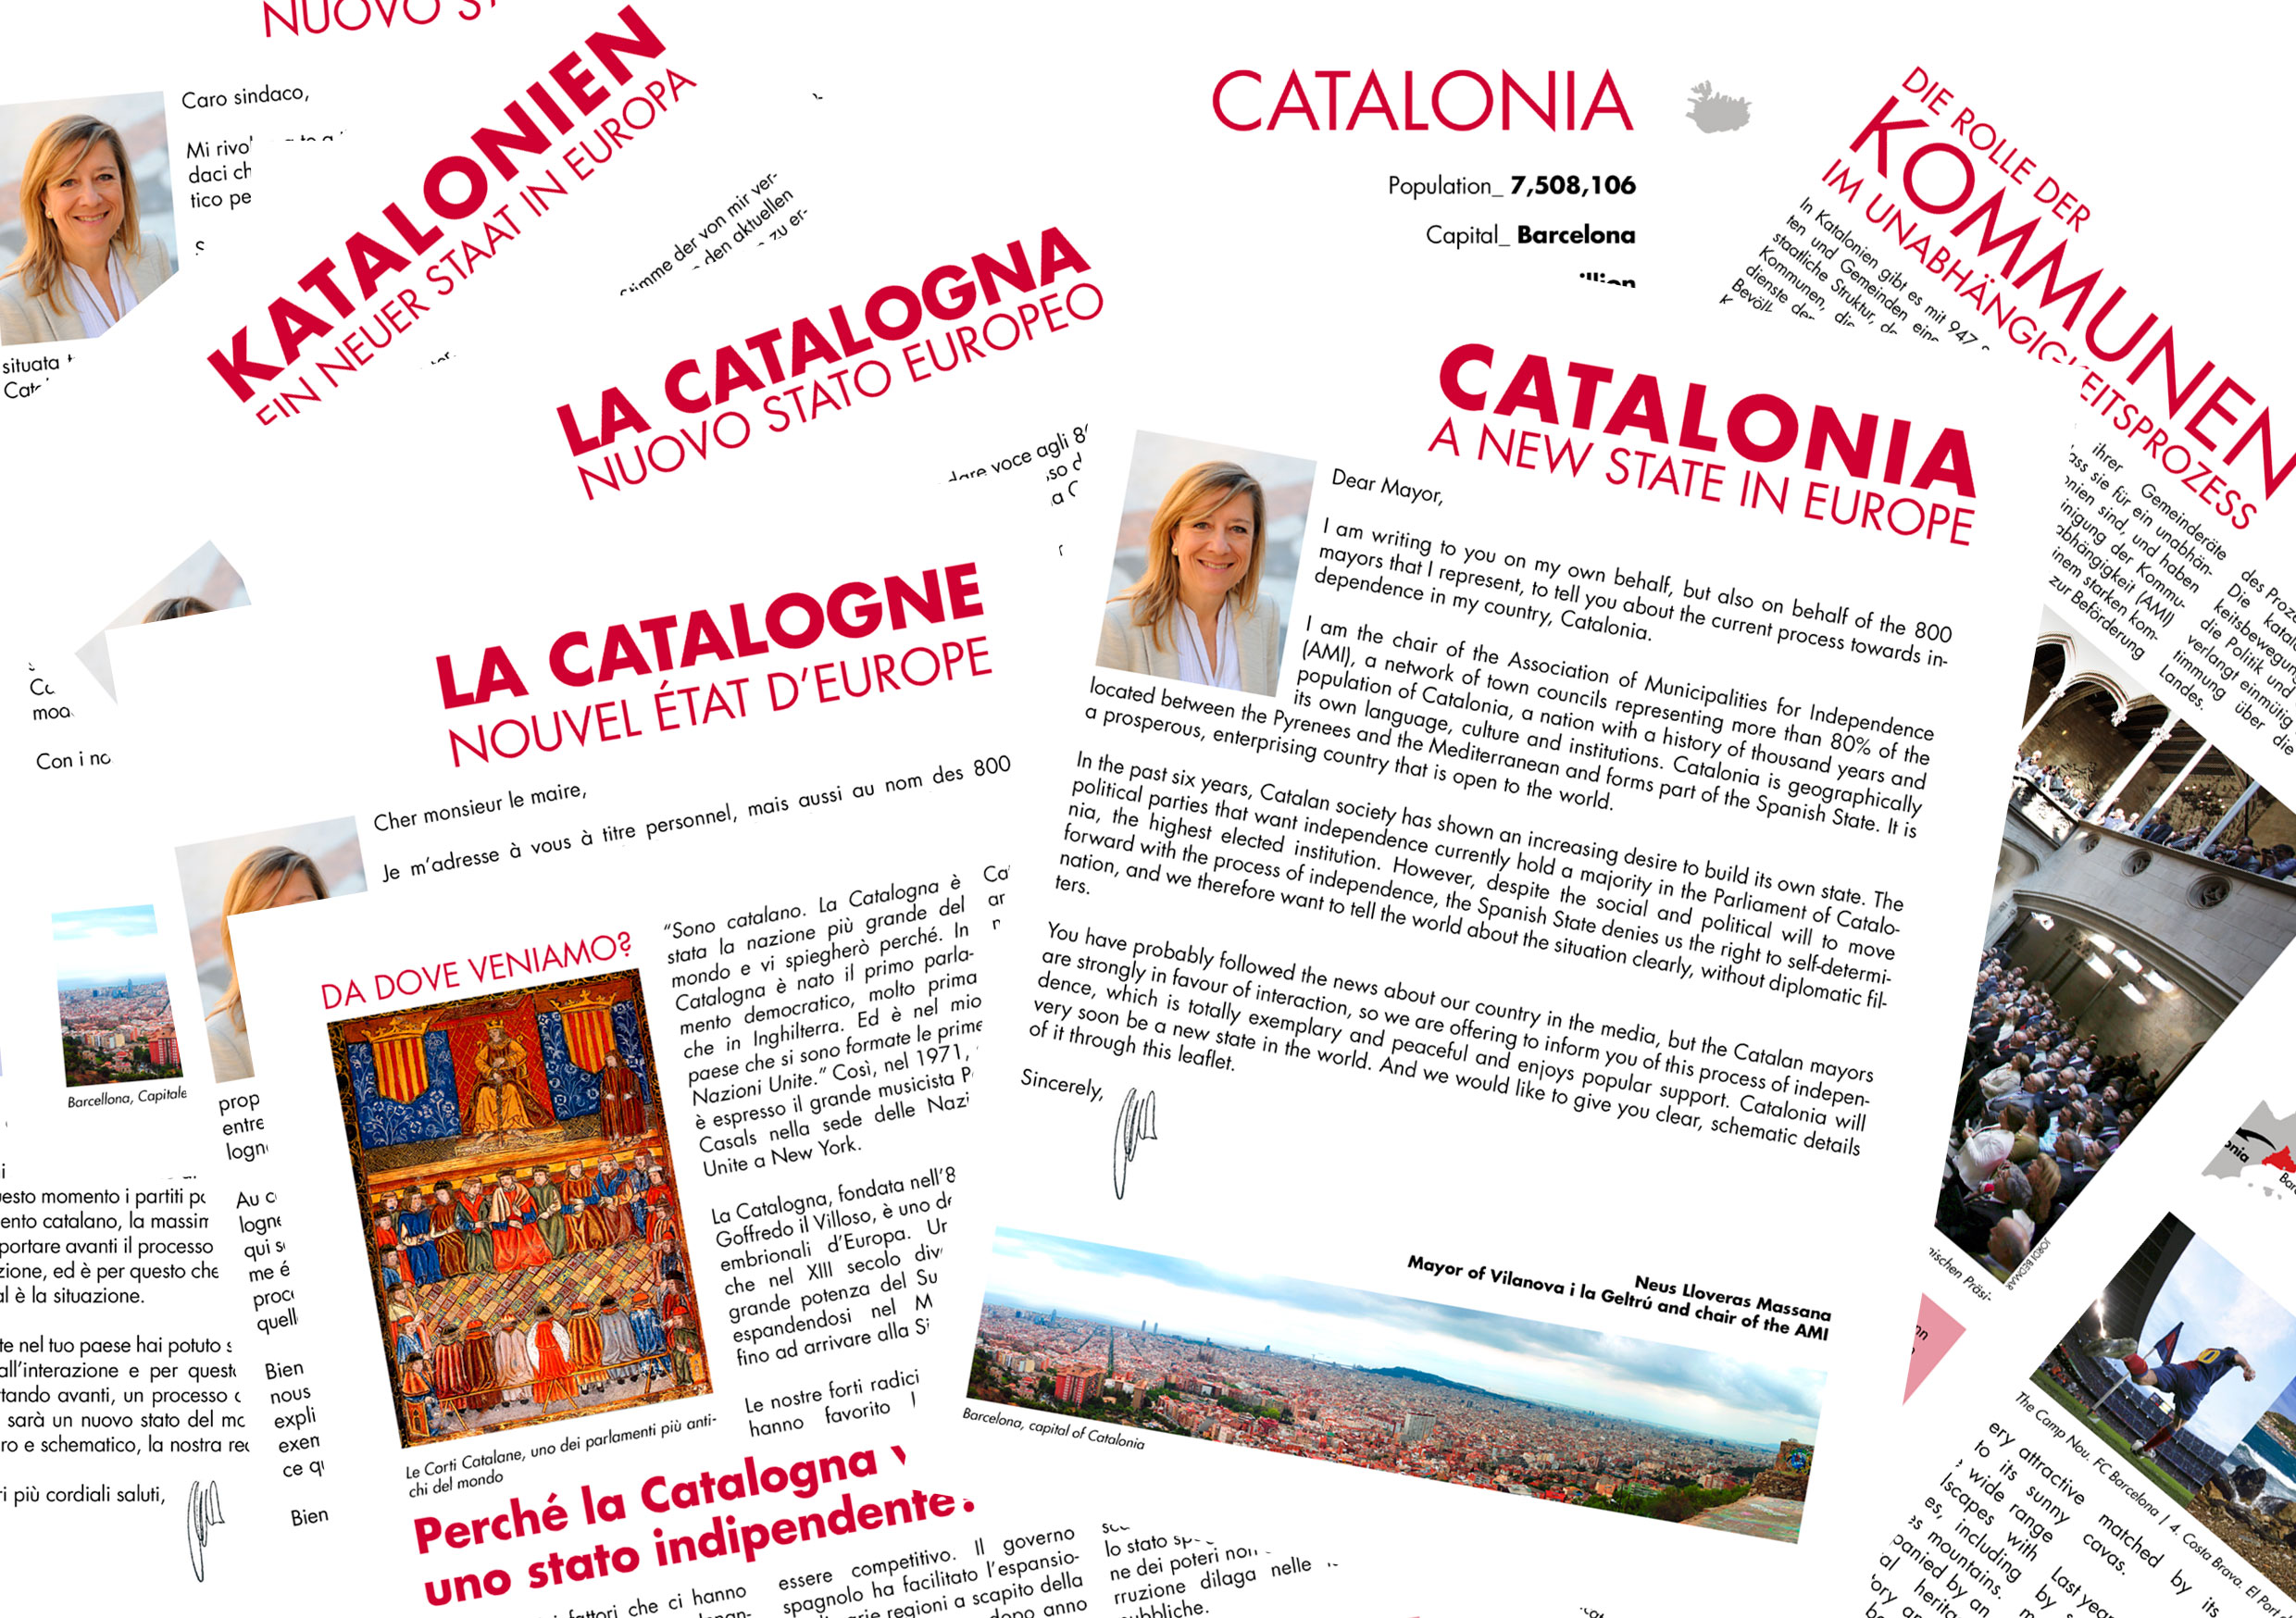 Catalonia, a new state in Europe